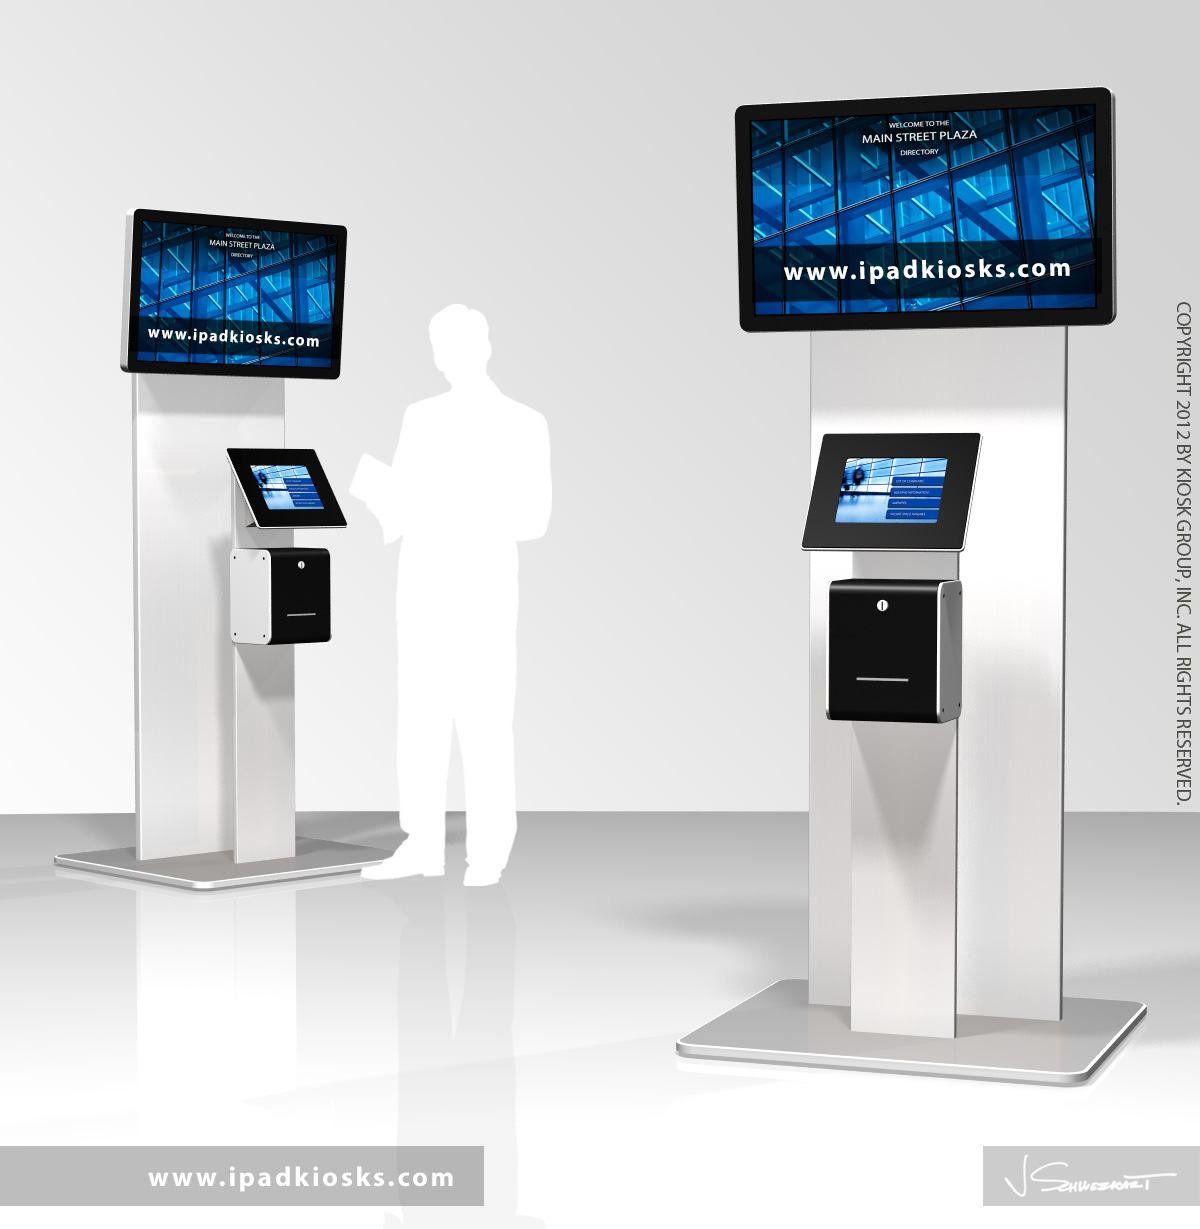 Kiosk Pro Now Offers Remote Ipad Kiosk Management Software